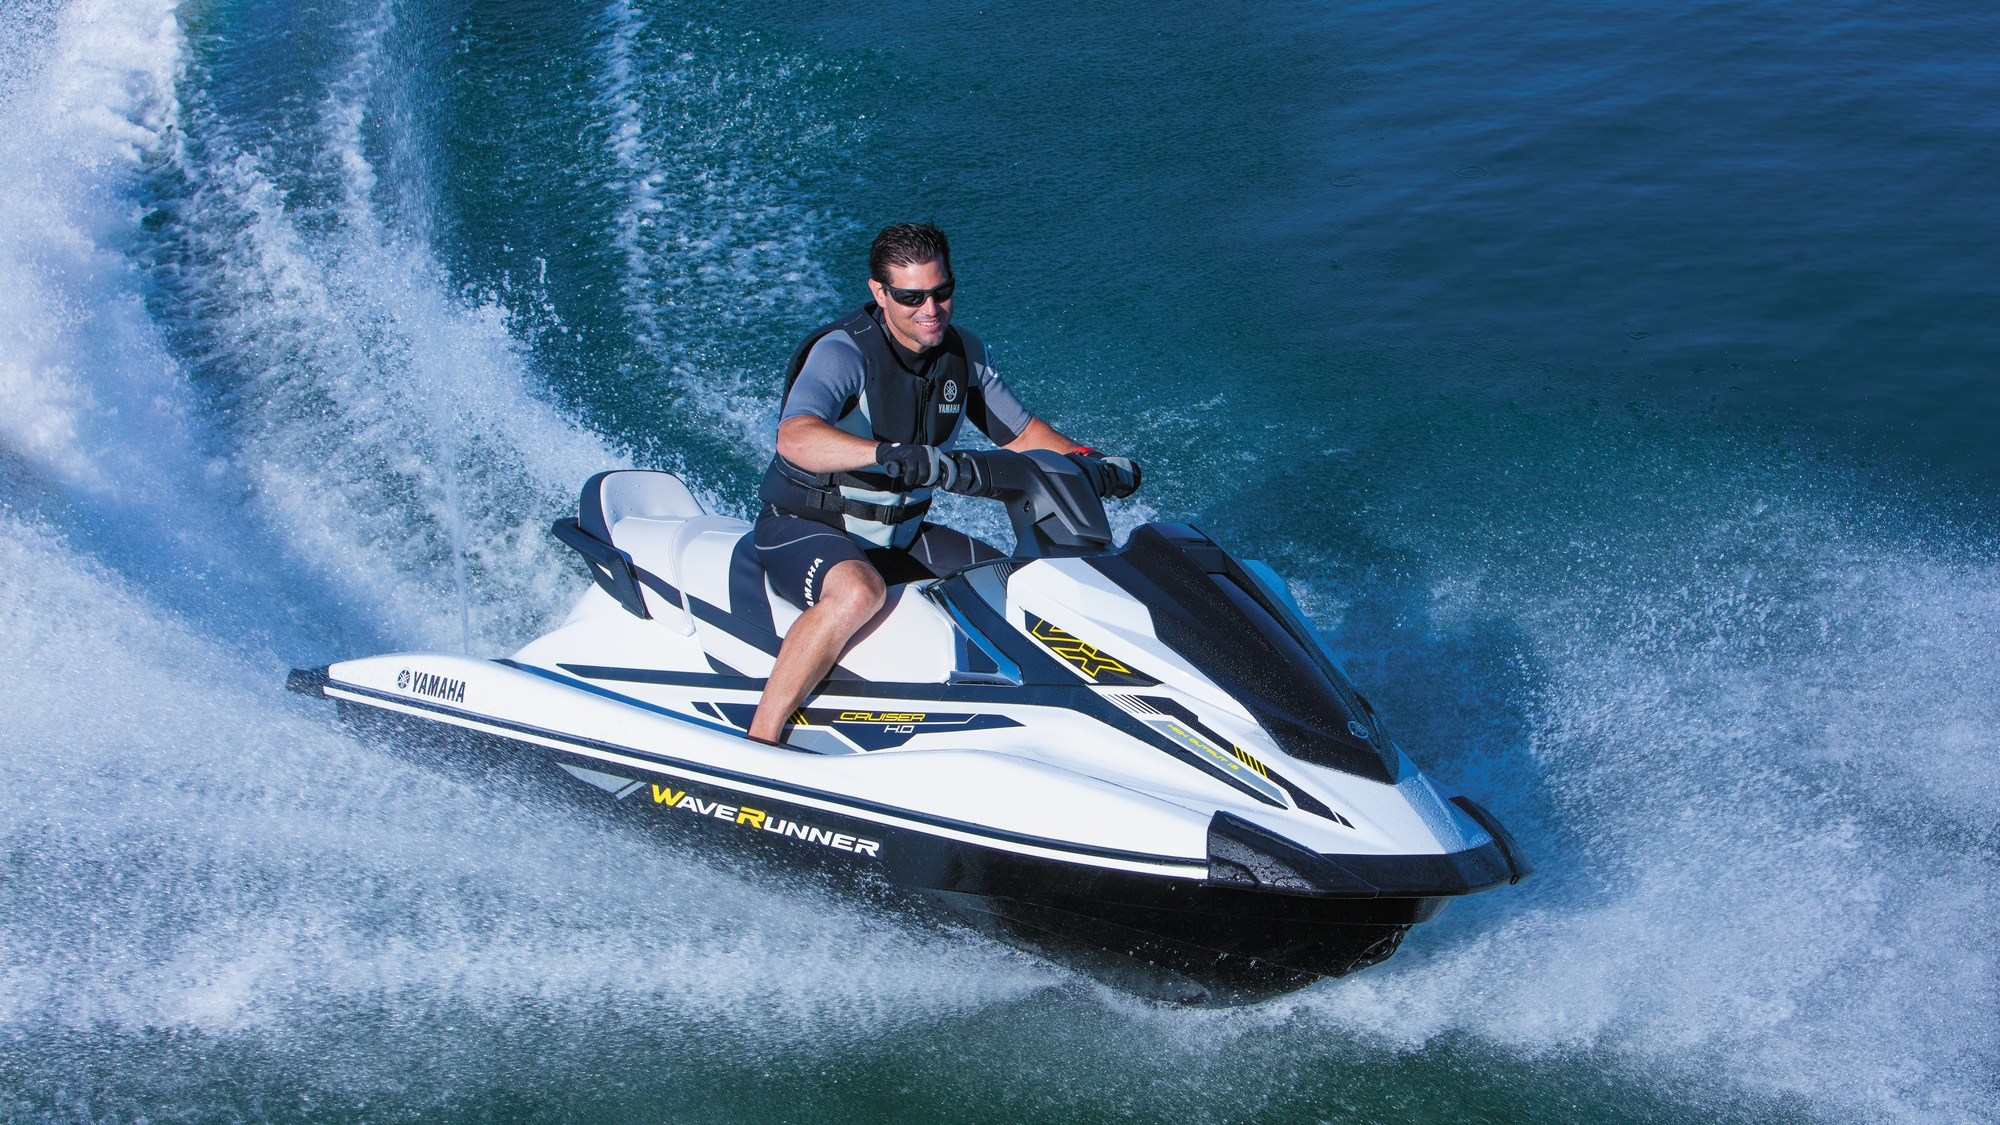 Waverunner vx cruiser high output arendal b dsenter as for Yamaha waverunner dealers near me